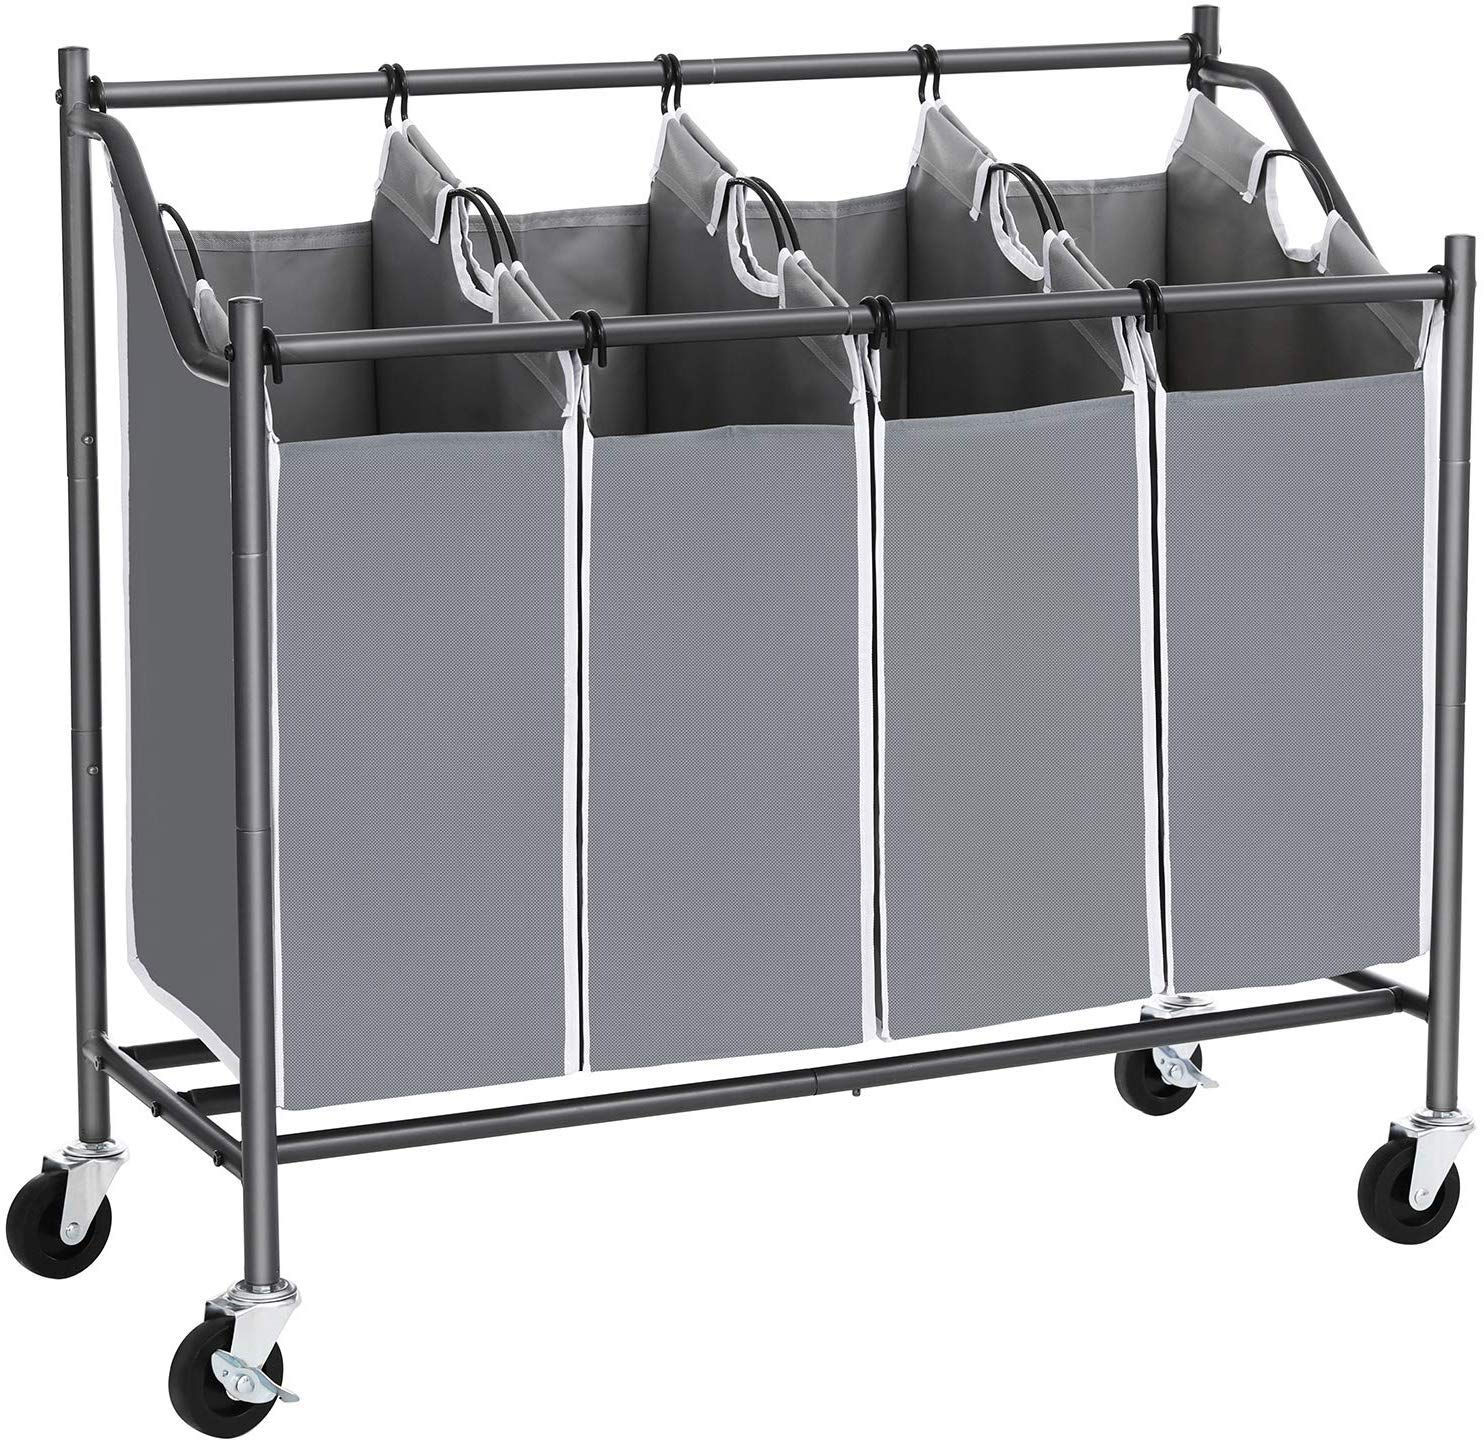 SONGMICS 4-Bag Laundry Cart Sorter, Rolling Laundry Basket Hamper, with 4 Removable Bags, Casters and Brakes, Gray URLS90GS by SONGMICS